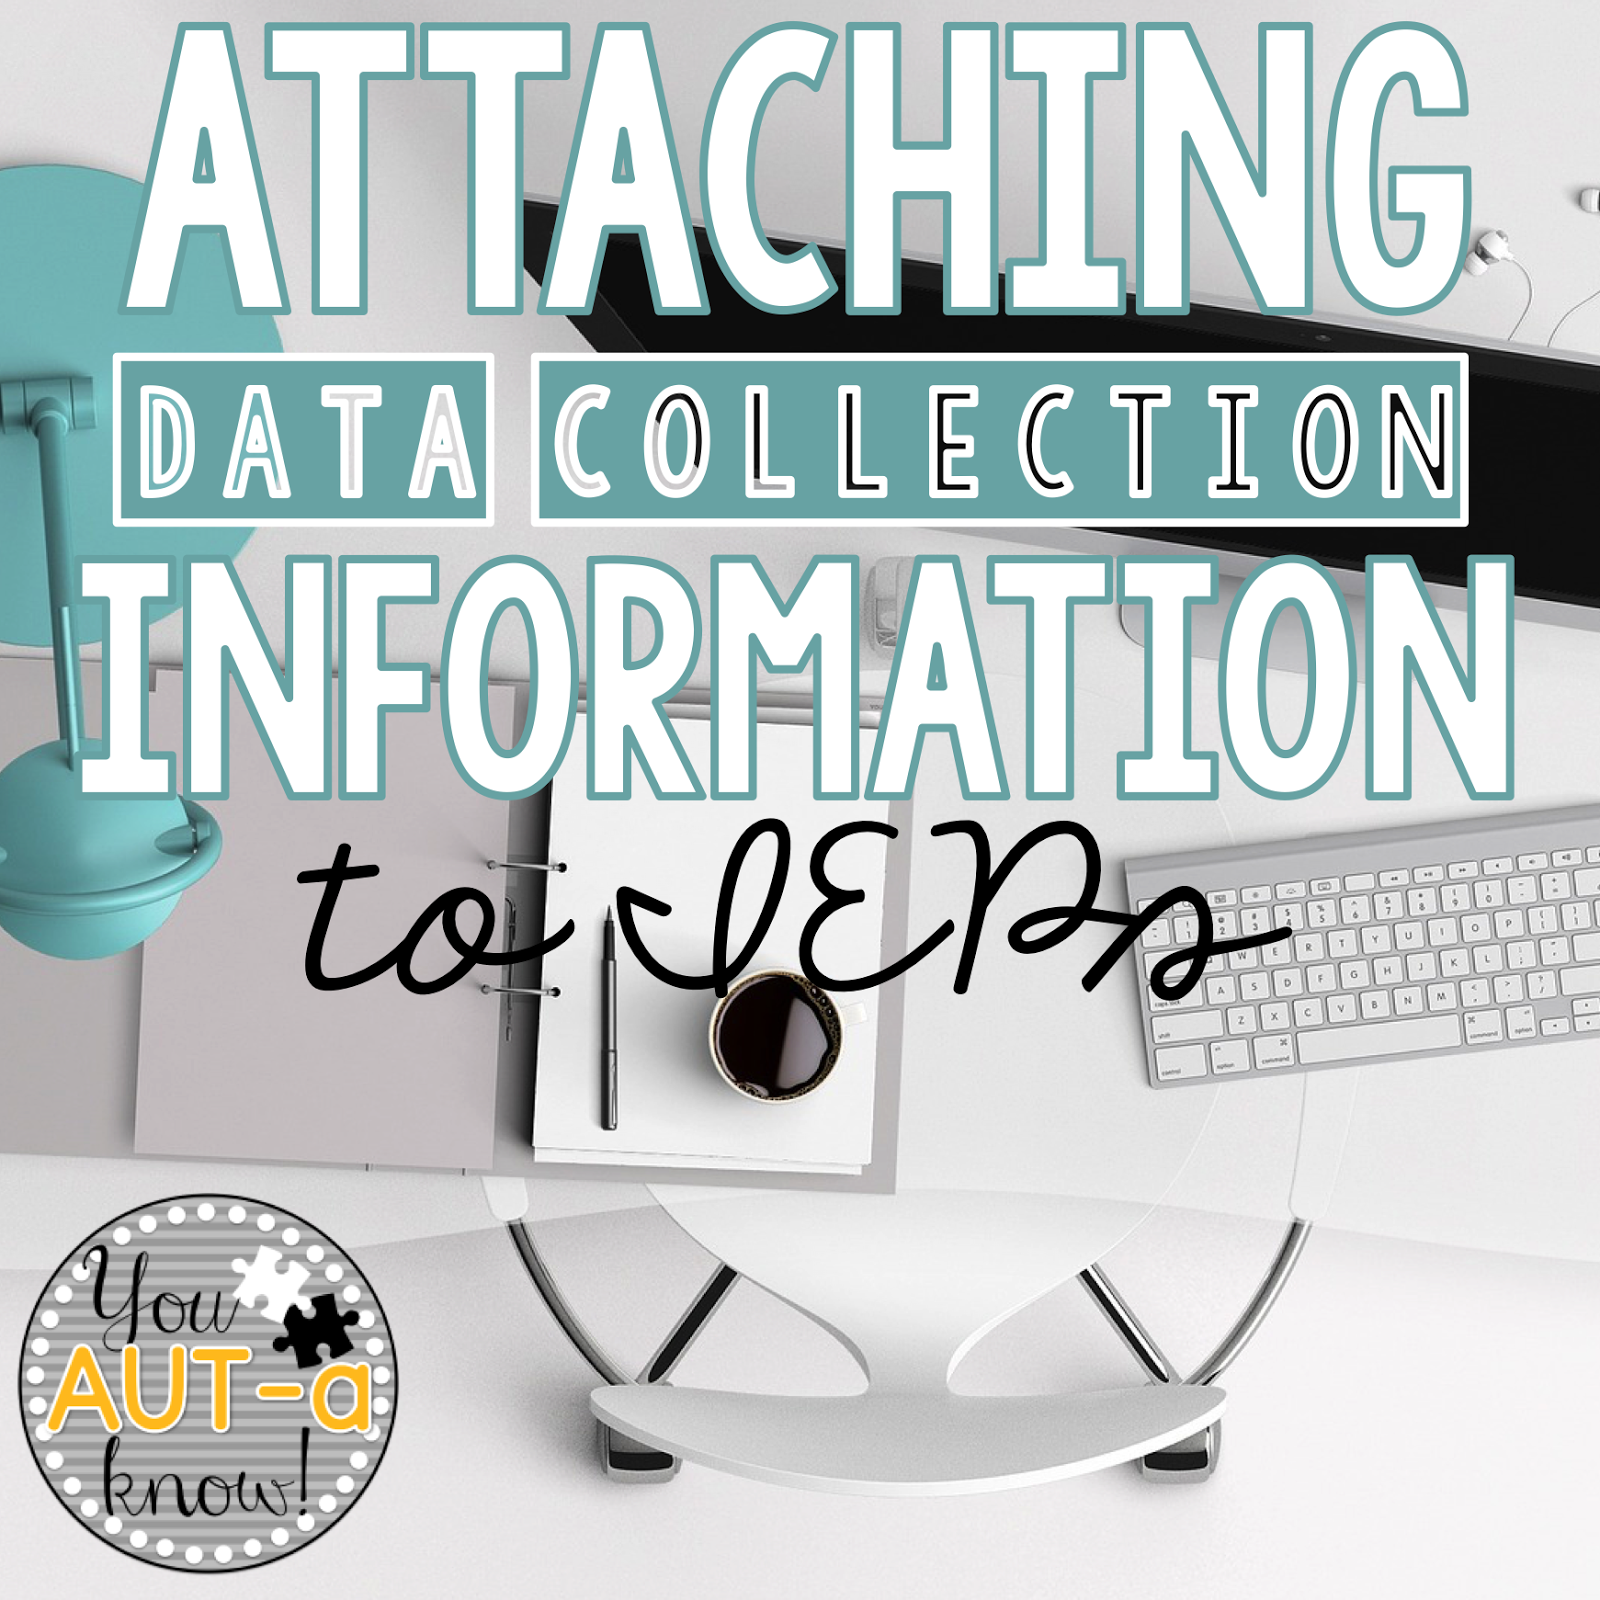 Attaching Data Collection Information to Goals - You AUT-a Know